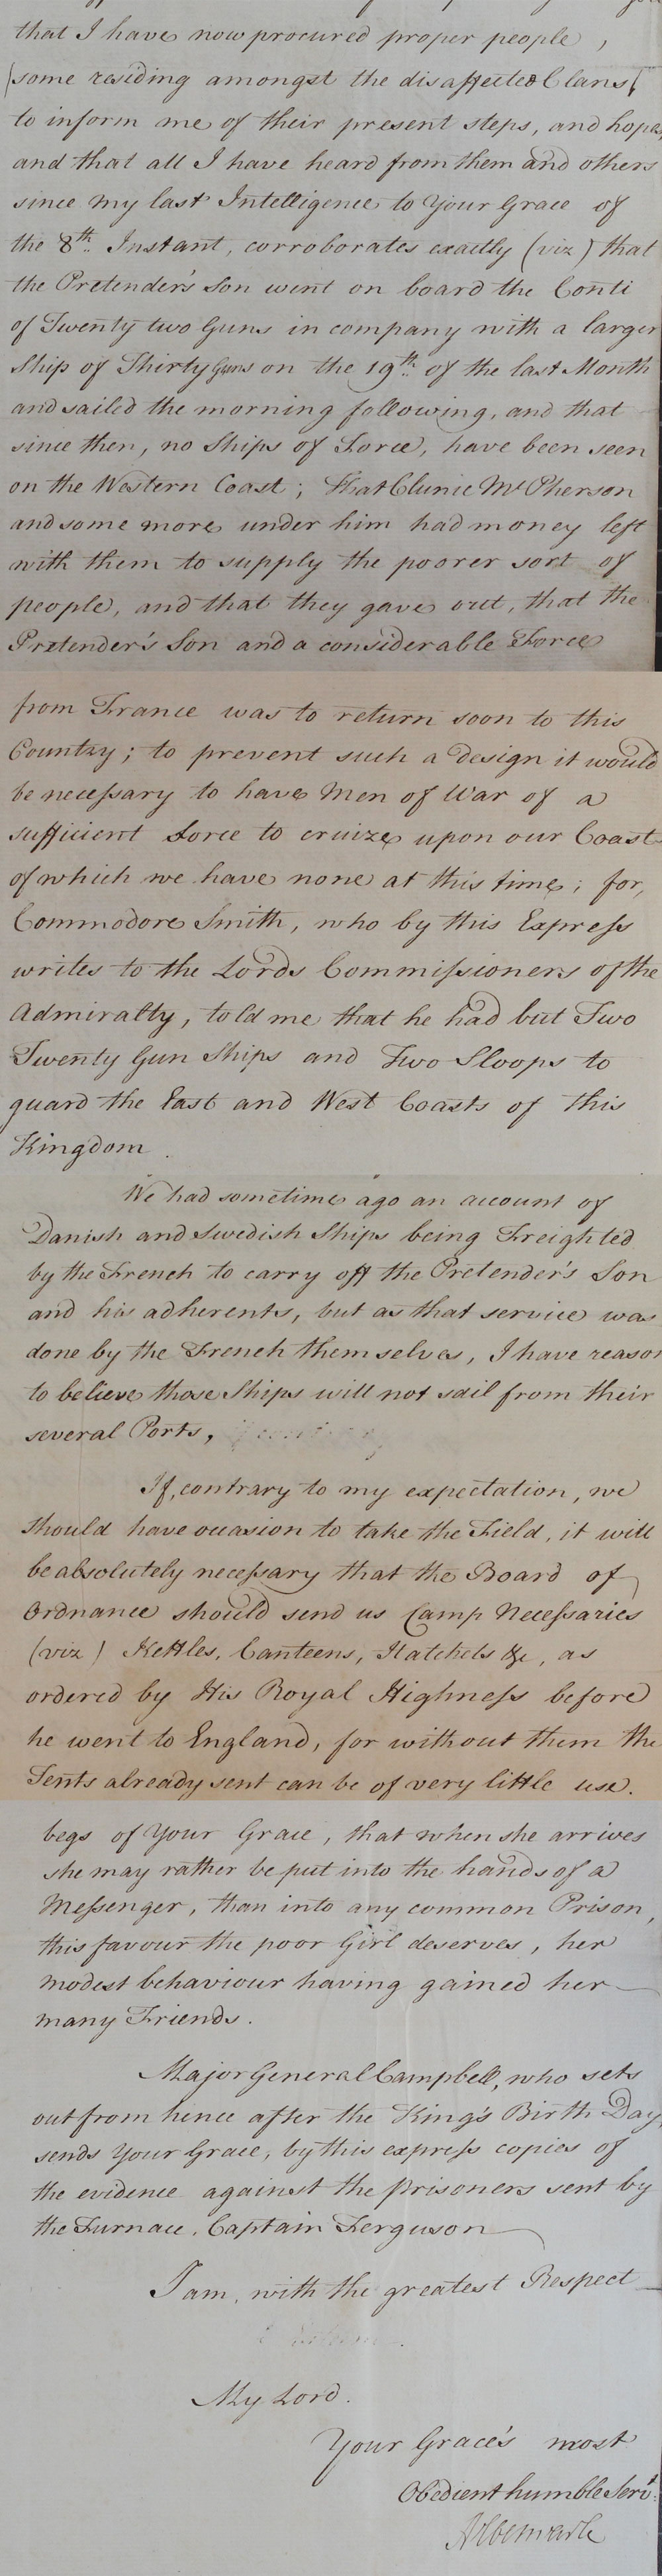 Letter from the Earl of Albemarle,1746 (SP 54/34/13A)